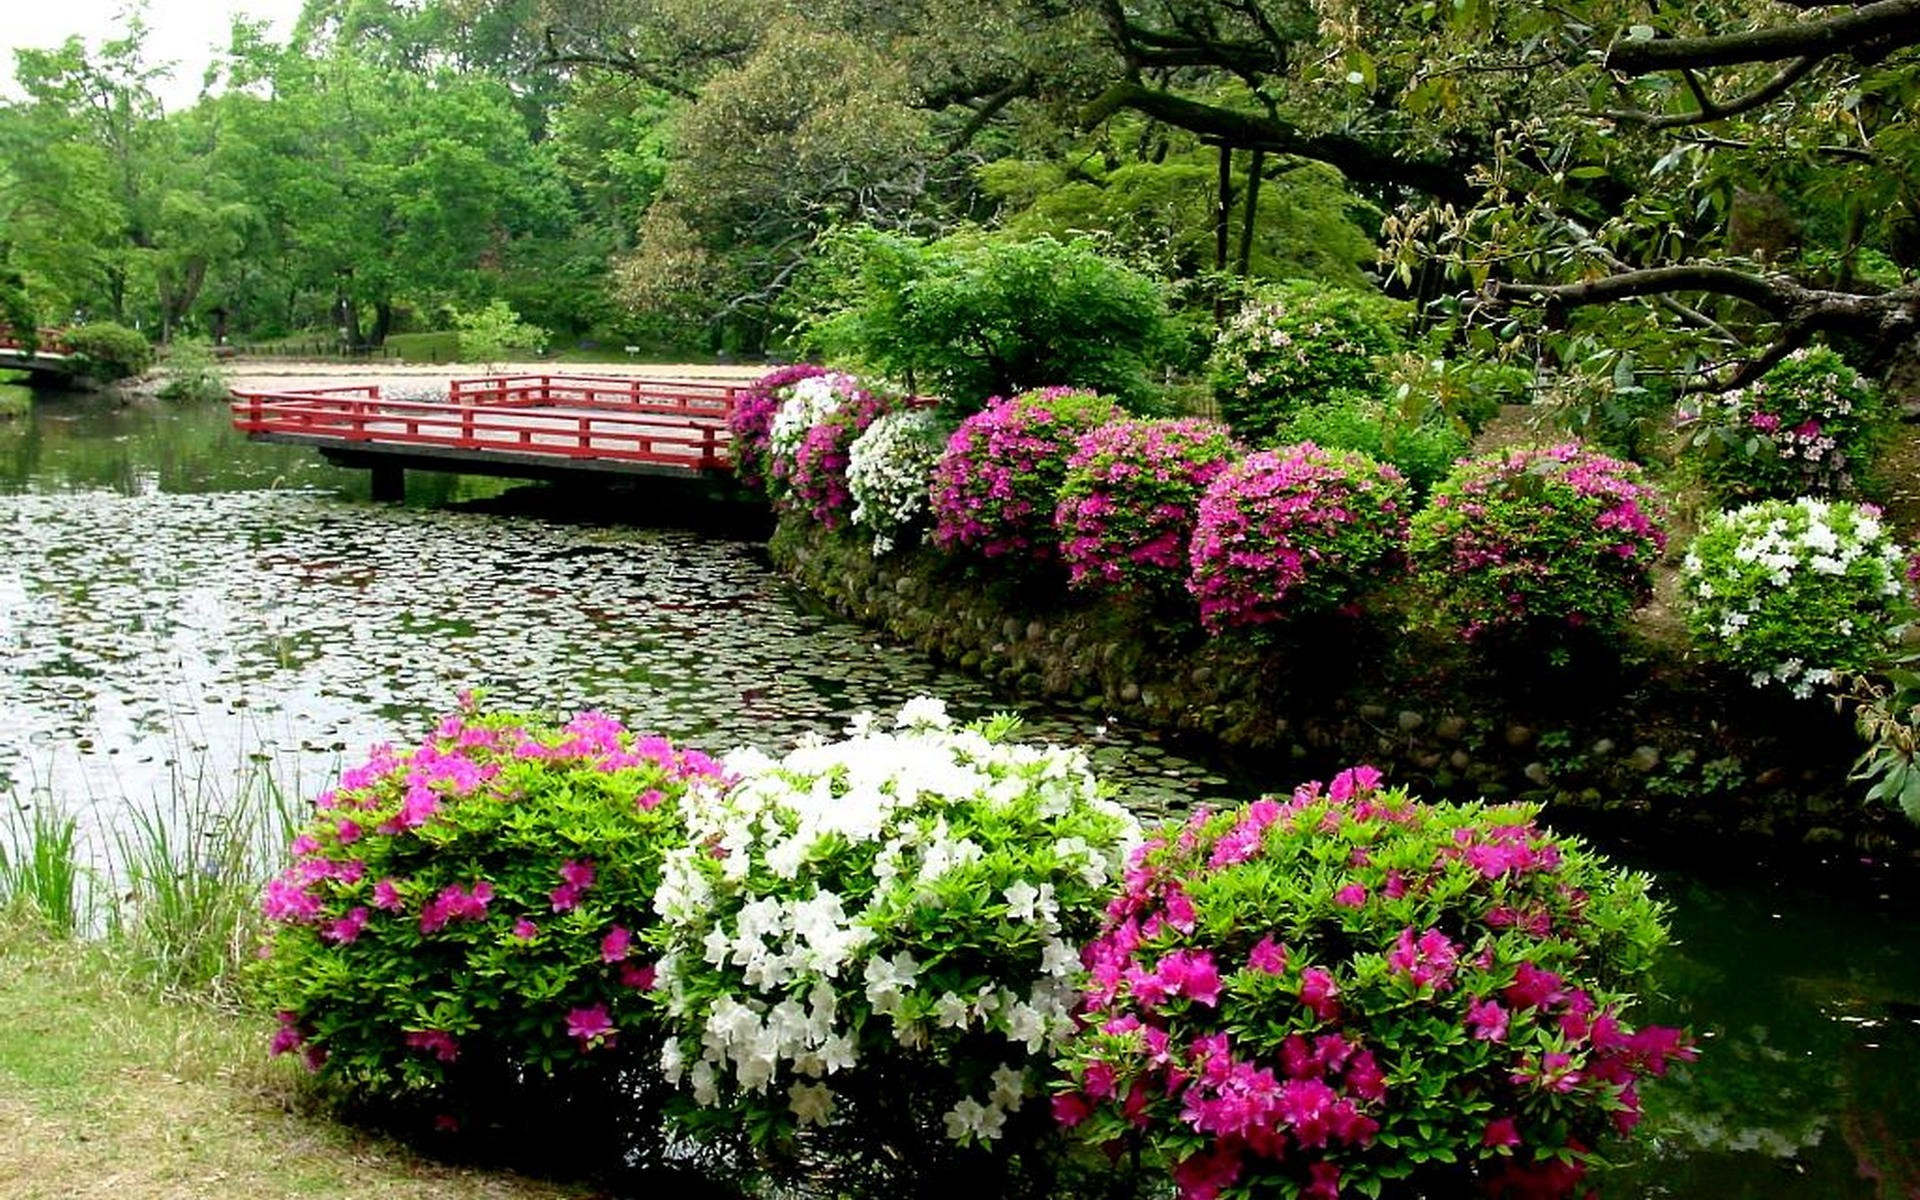 Res: 1920x1200, Lush Greenery Pictures Beautiful Gardens